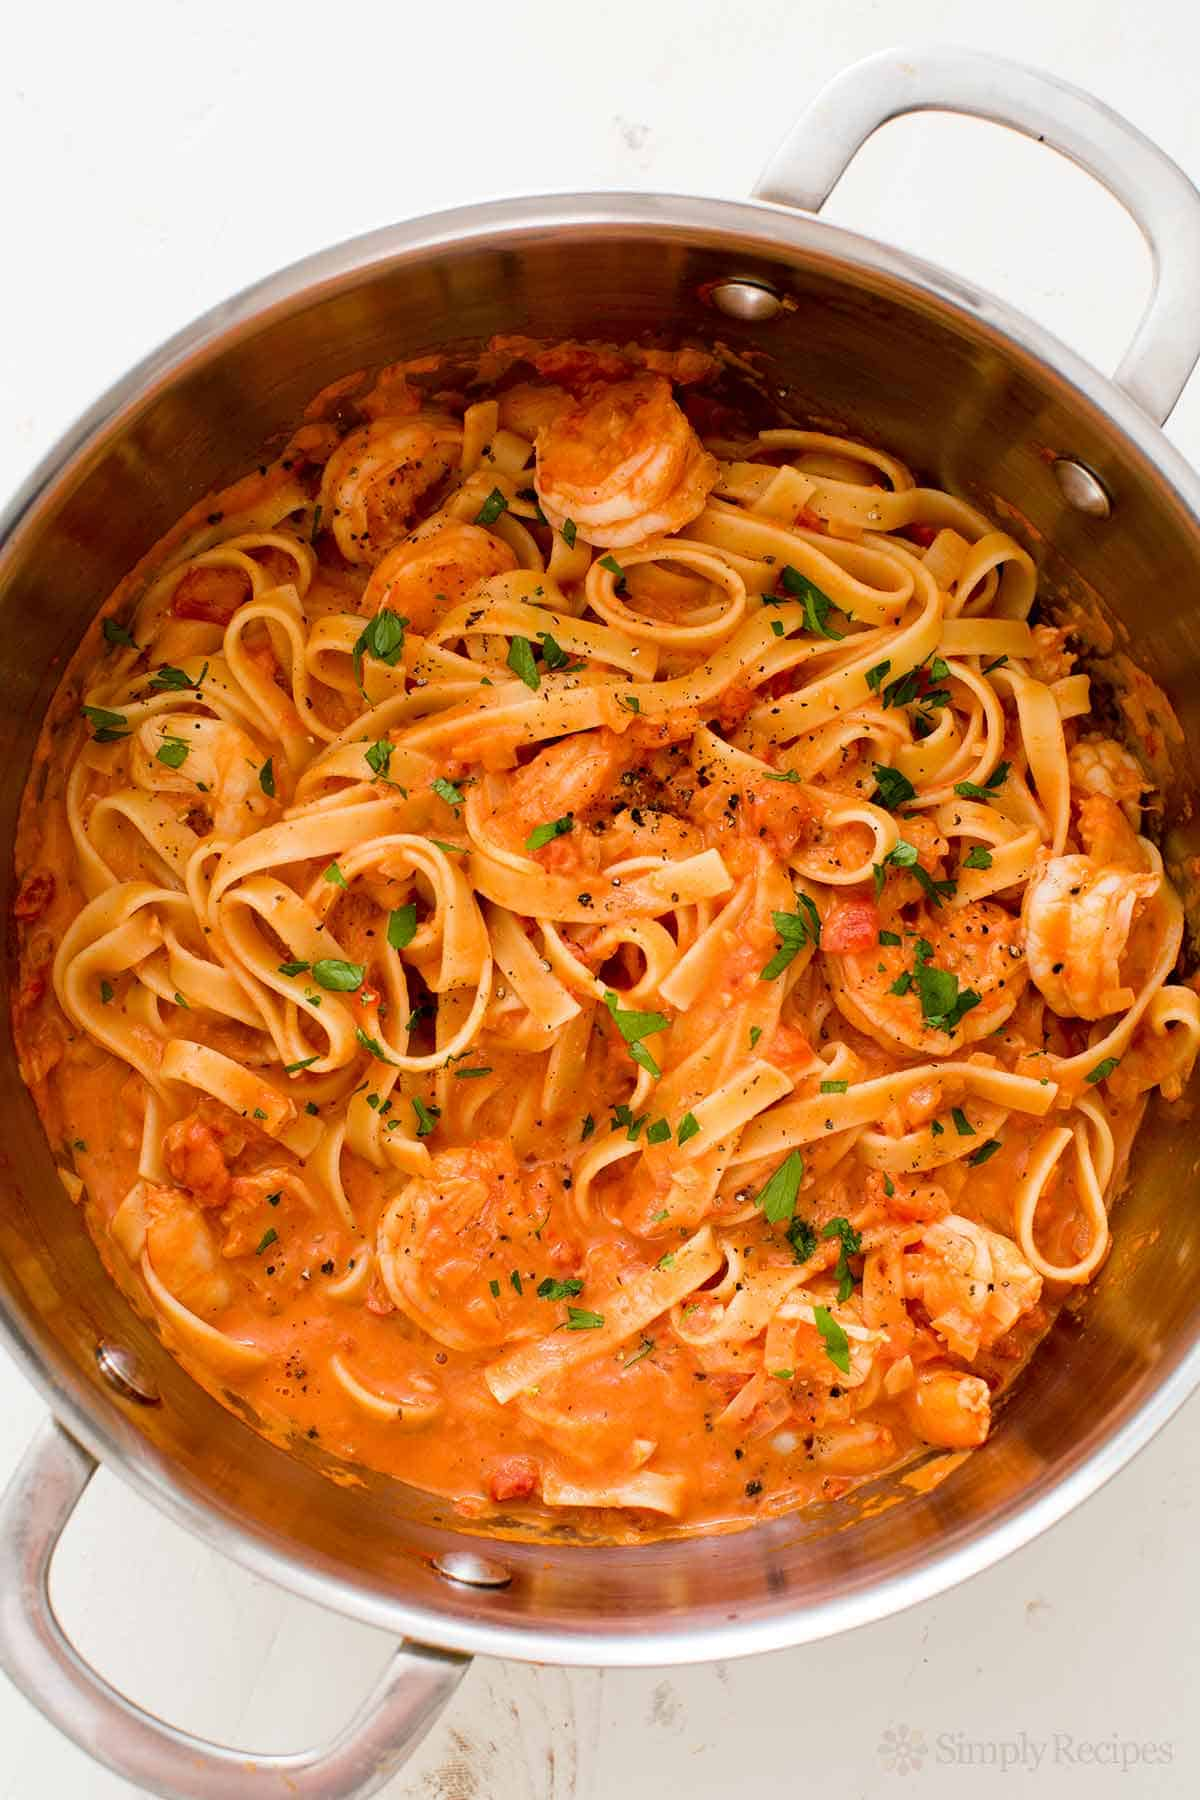 Shrimp pasta alla vodka A Scrumptious Healthy Treat to Enjoy: Seafood Pasta Recipes